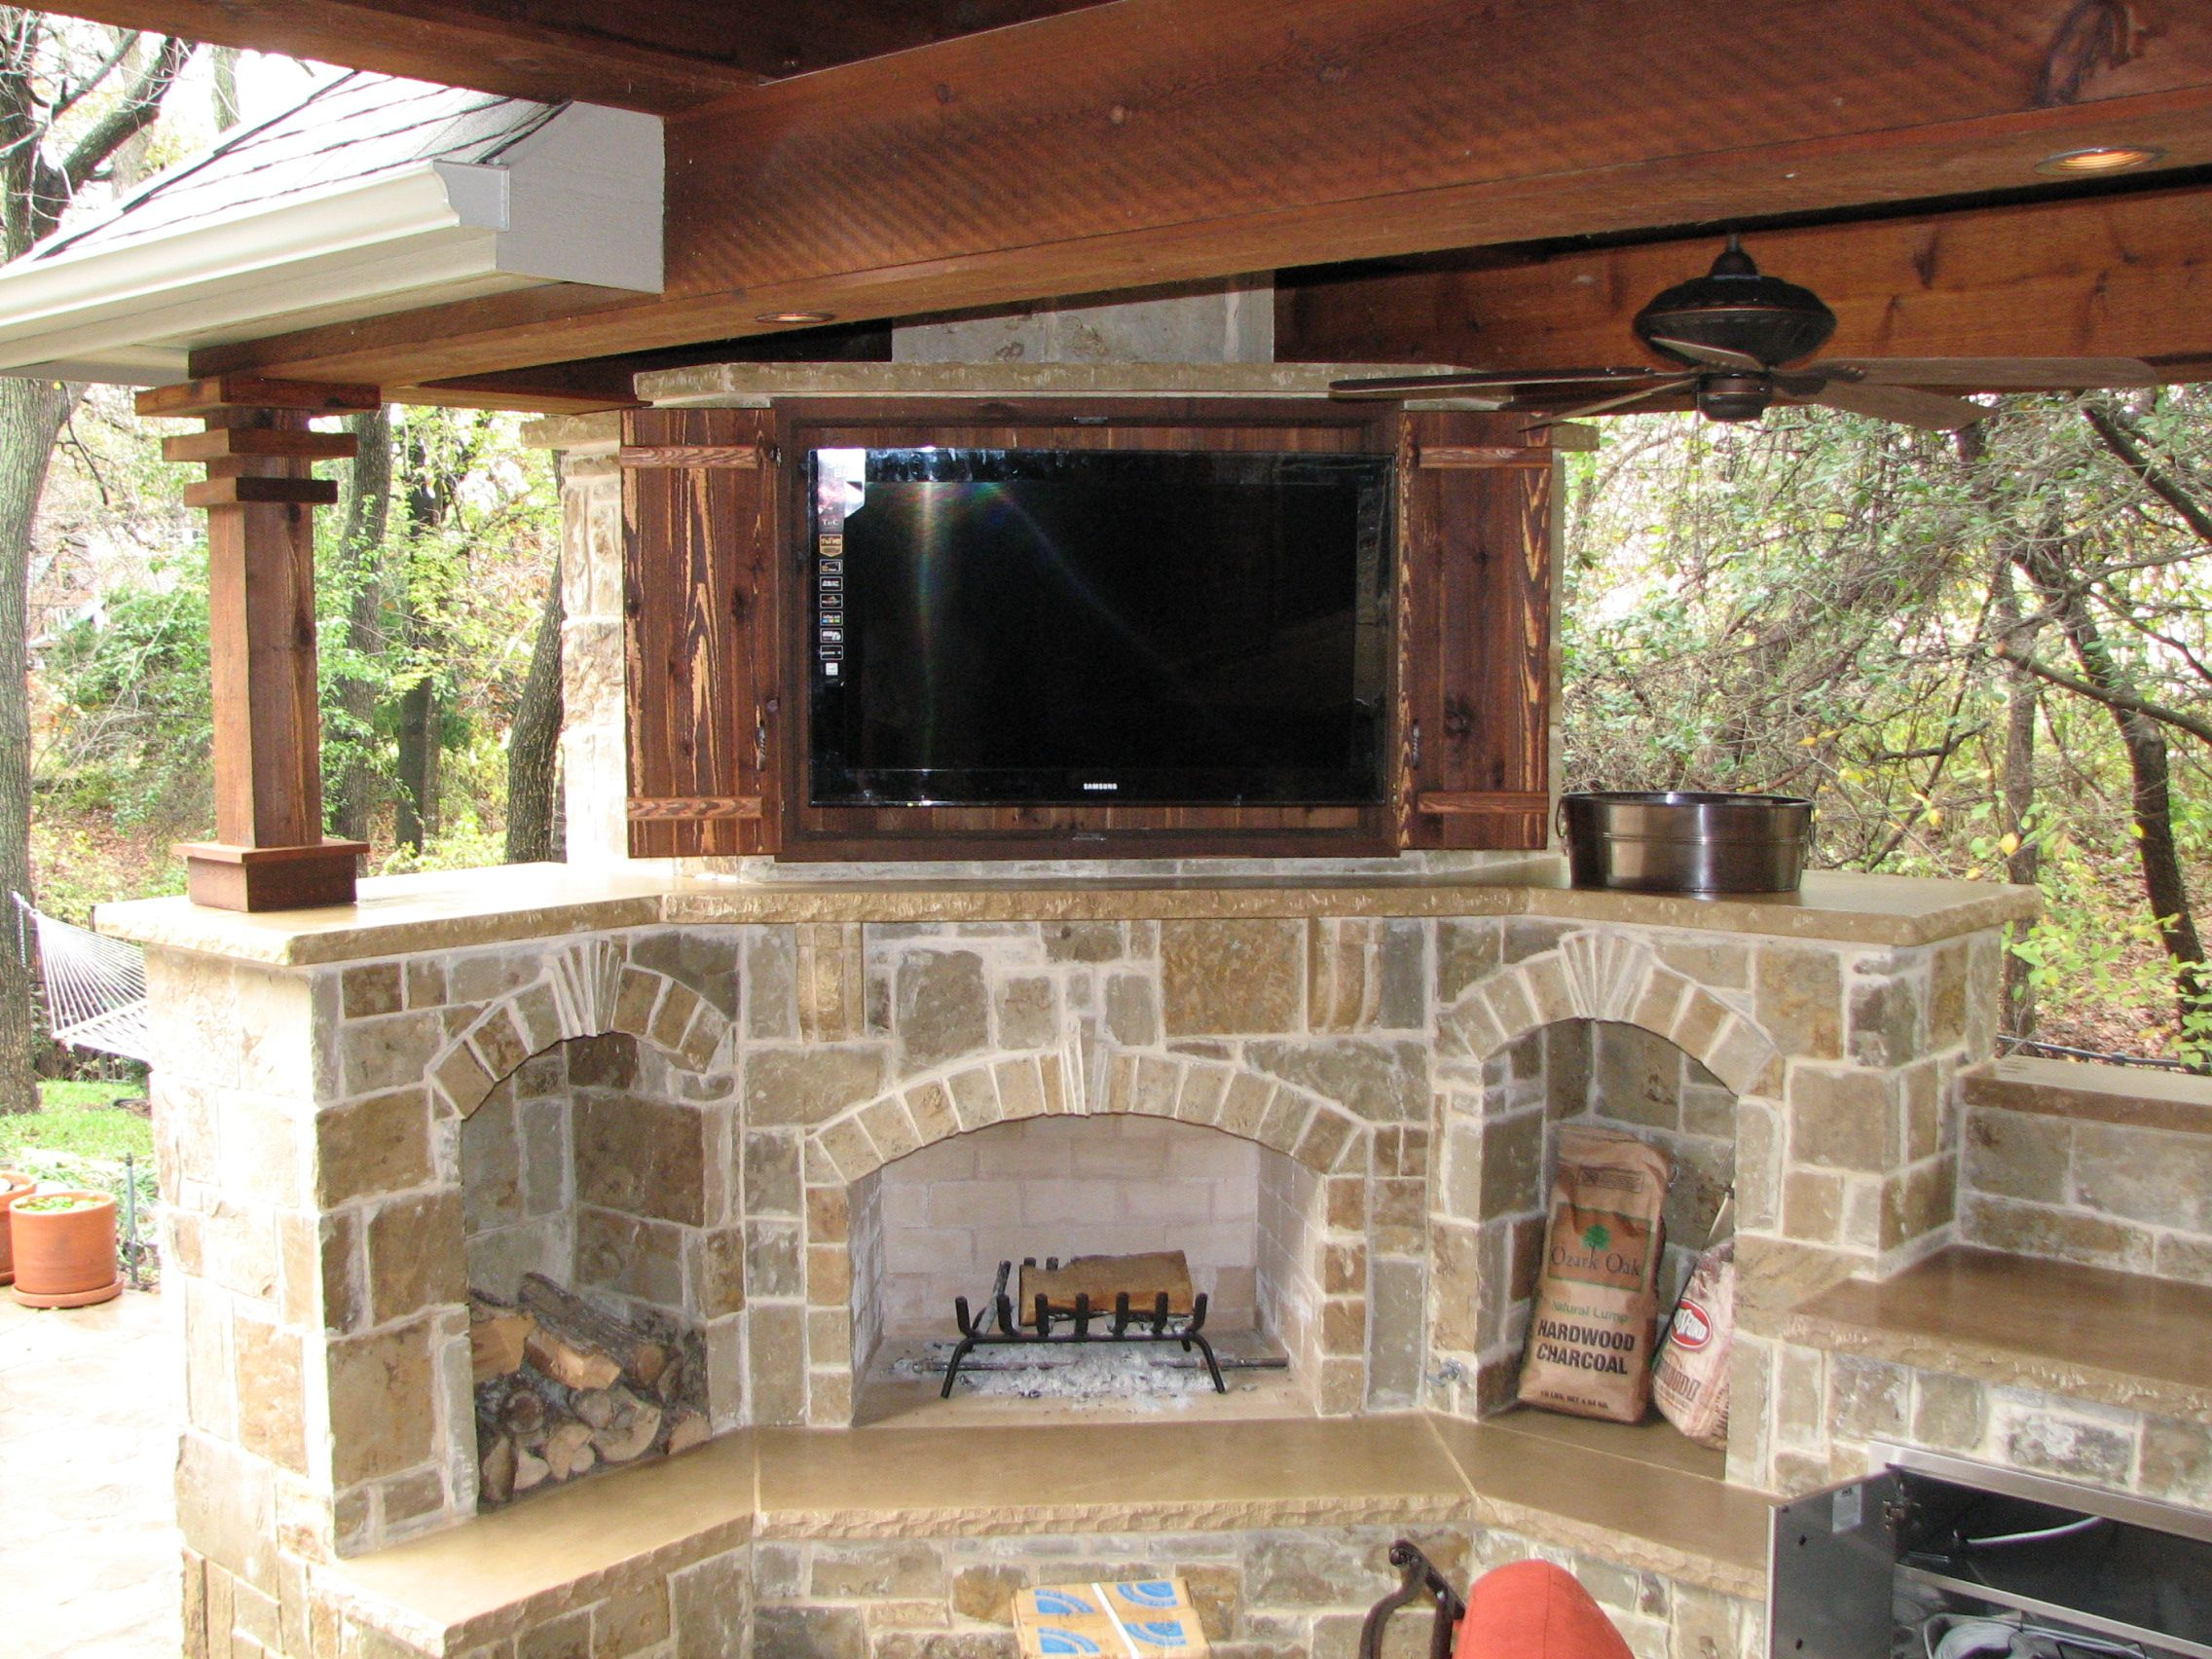 Rustic outdoor storage cabinets with doors above fireplace for Outdoor patio fireplace ideas